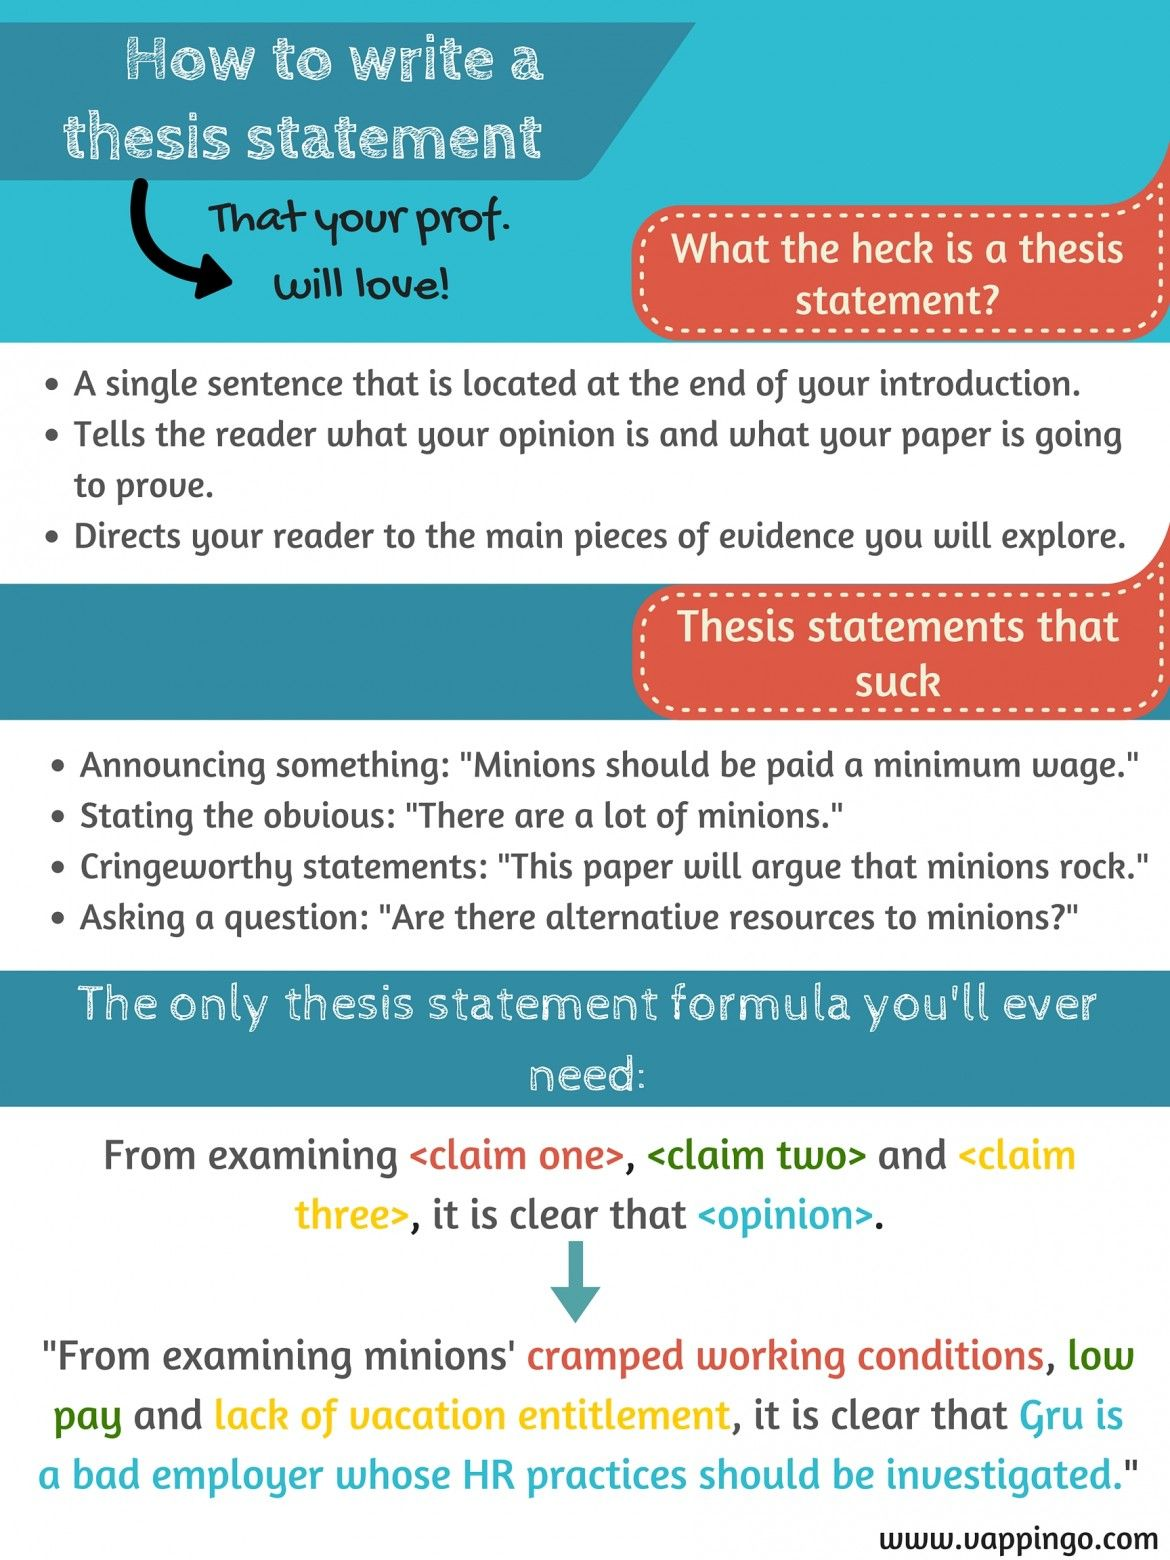 Analysis Essay Outline  Online Essay Scorer also Dangers Of Speeding Essay How To Write A Thesis Statement Fillintheblank Formula  Ielts Essay Topic